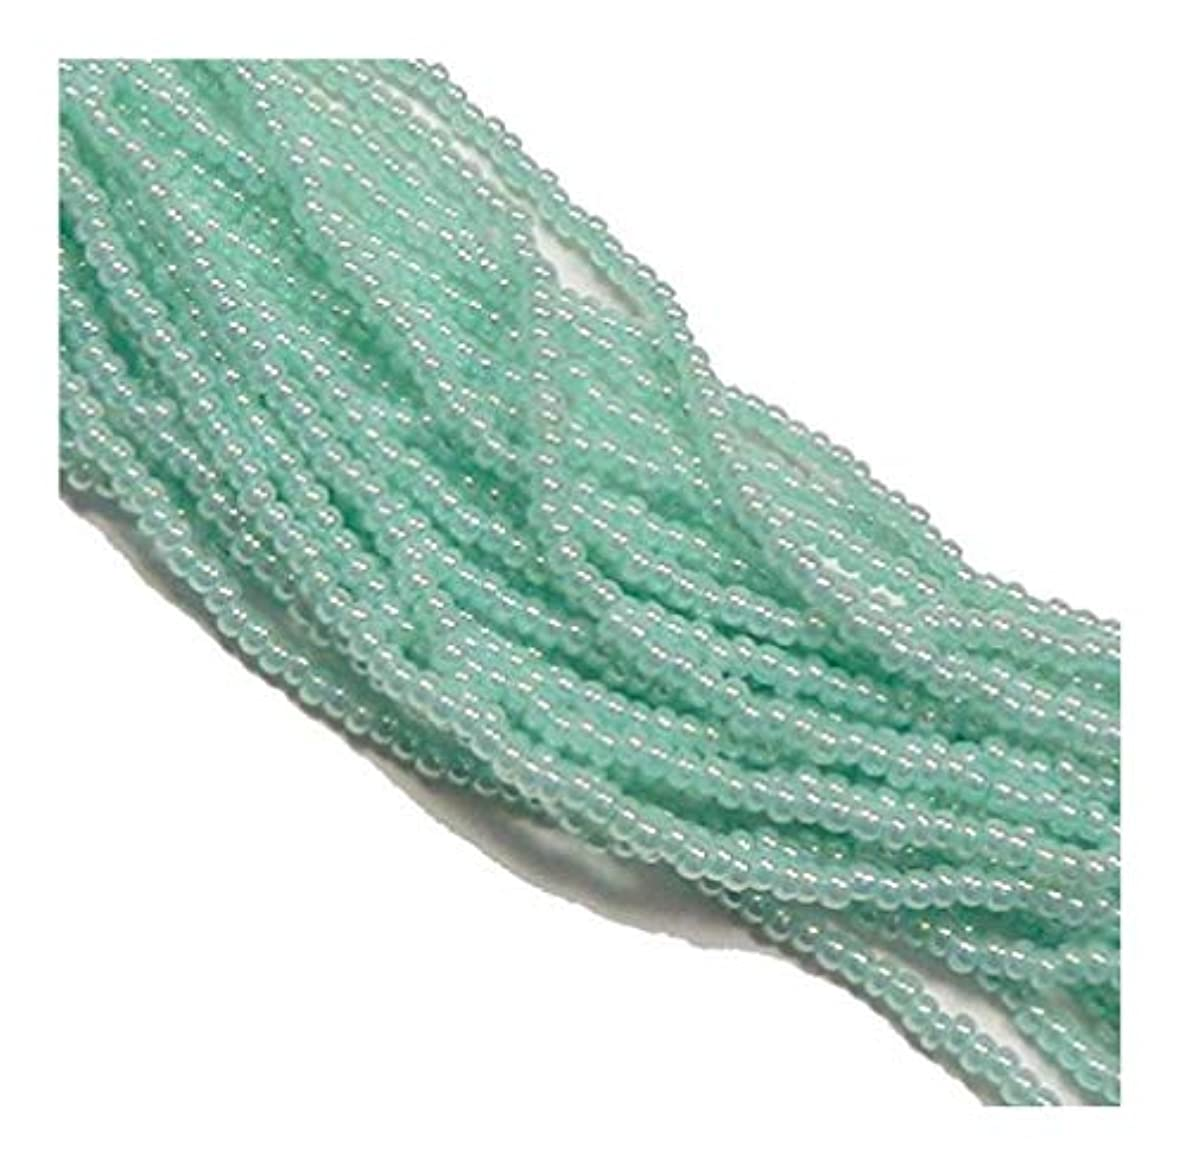 Green Ceylon Pearl Czech 6/0 Seed Bead on Loose Strung 6 String Hank Approx 900 Beads